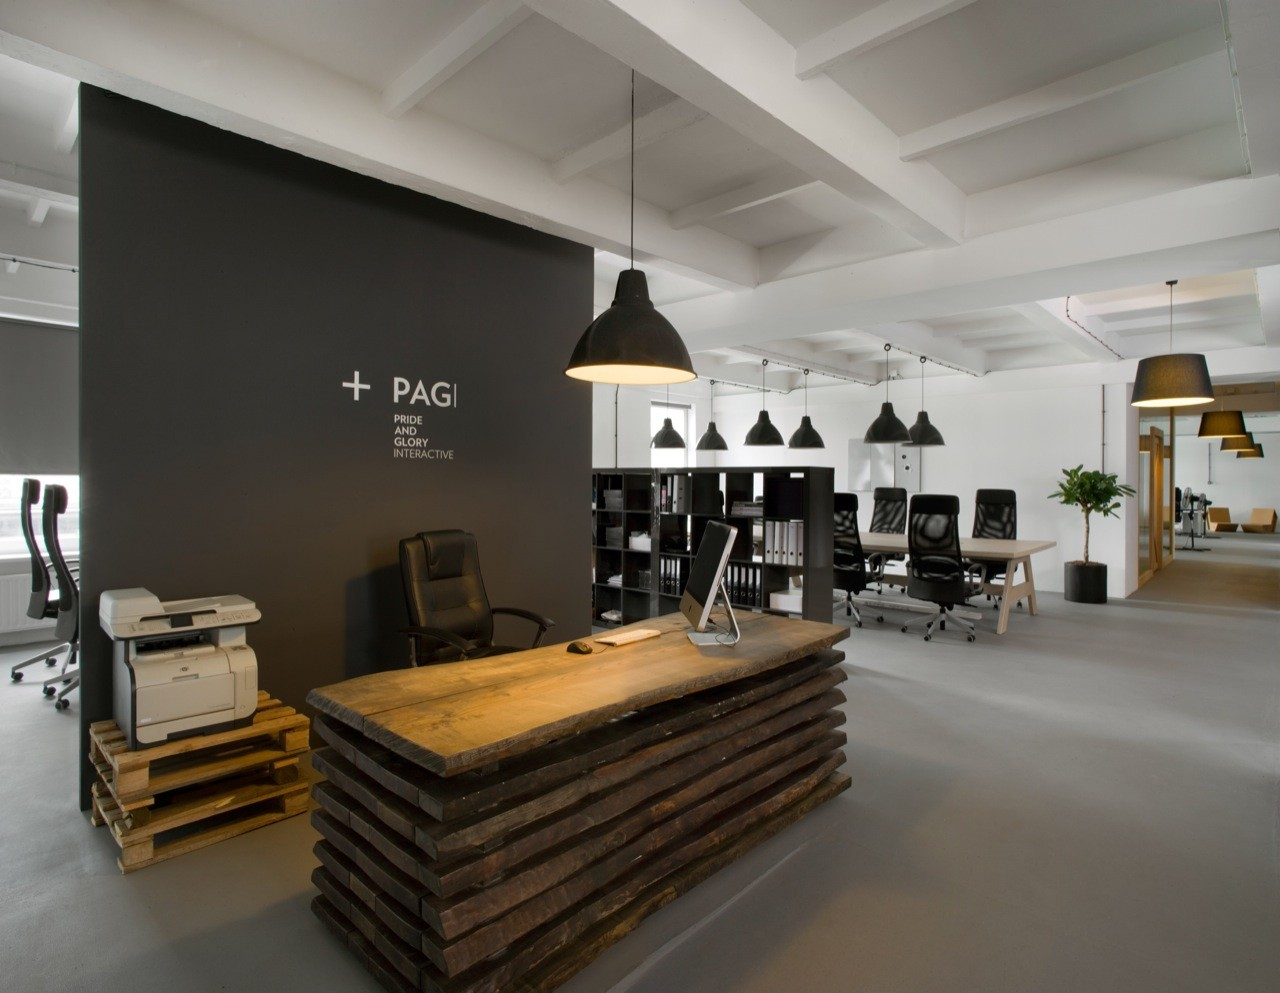 Pride And Glory Office  / Morpho Studio, Courtesy of Morpho Studio